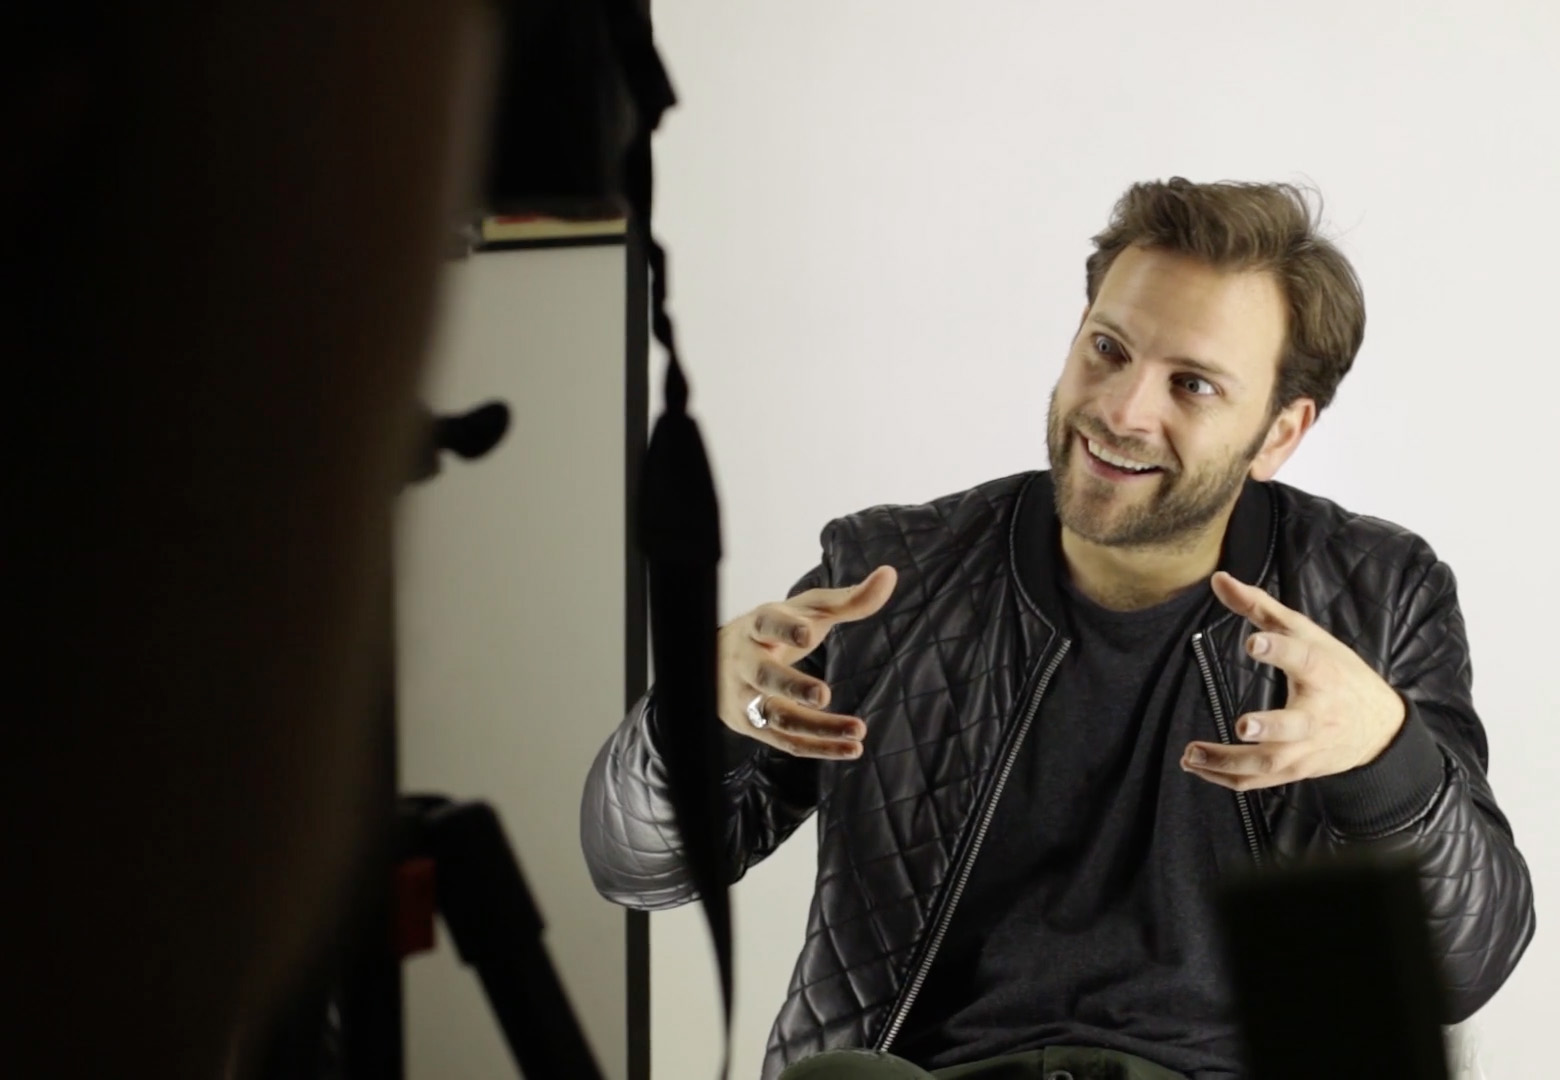 alessandro borghi backstage video